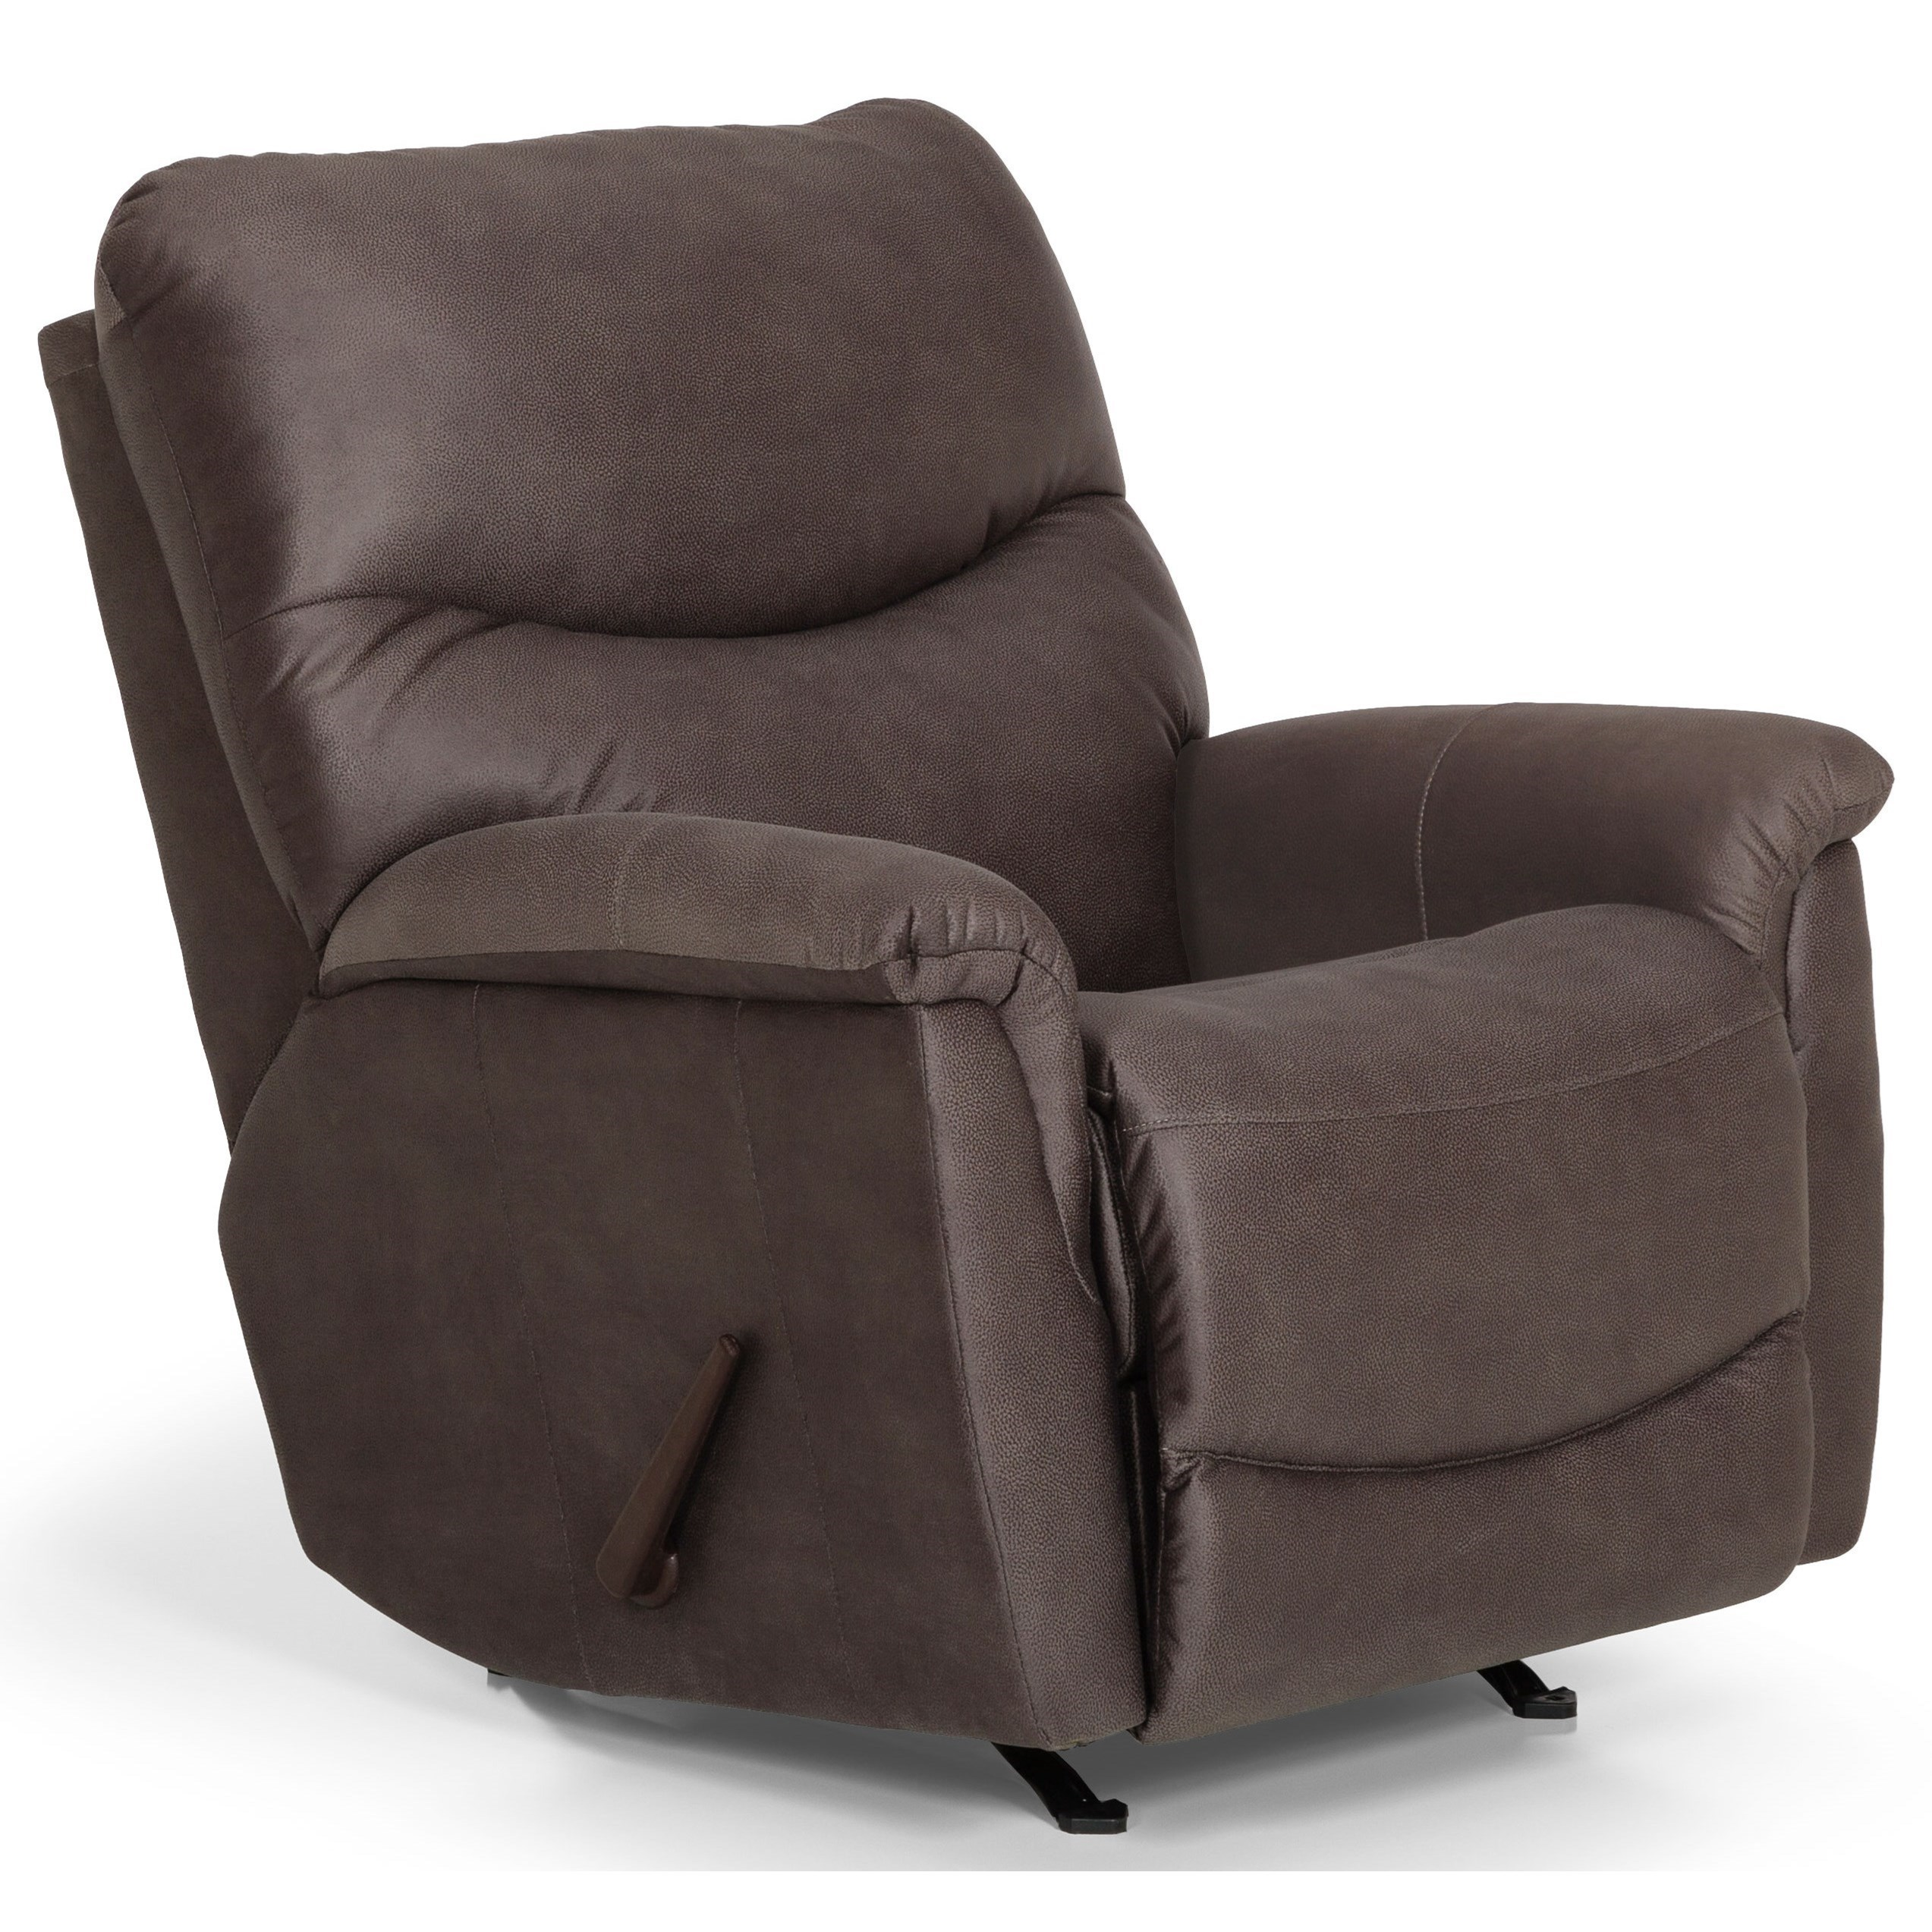 811 Swivel Gliding Reclining Chair by Stanton at Wilson's Furniture